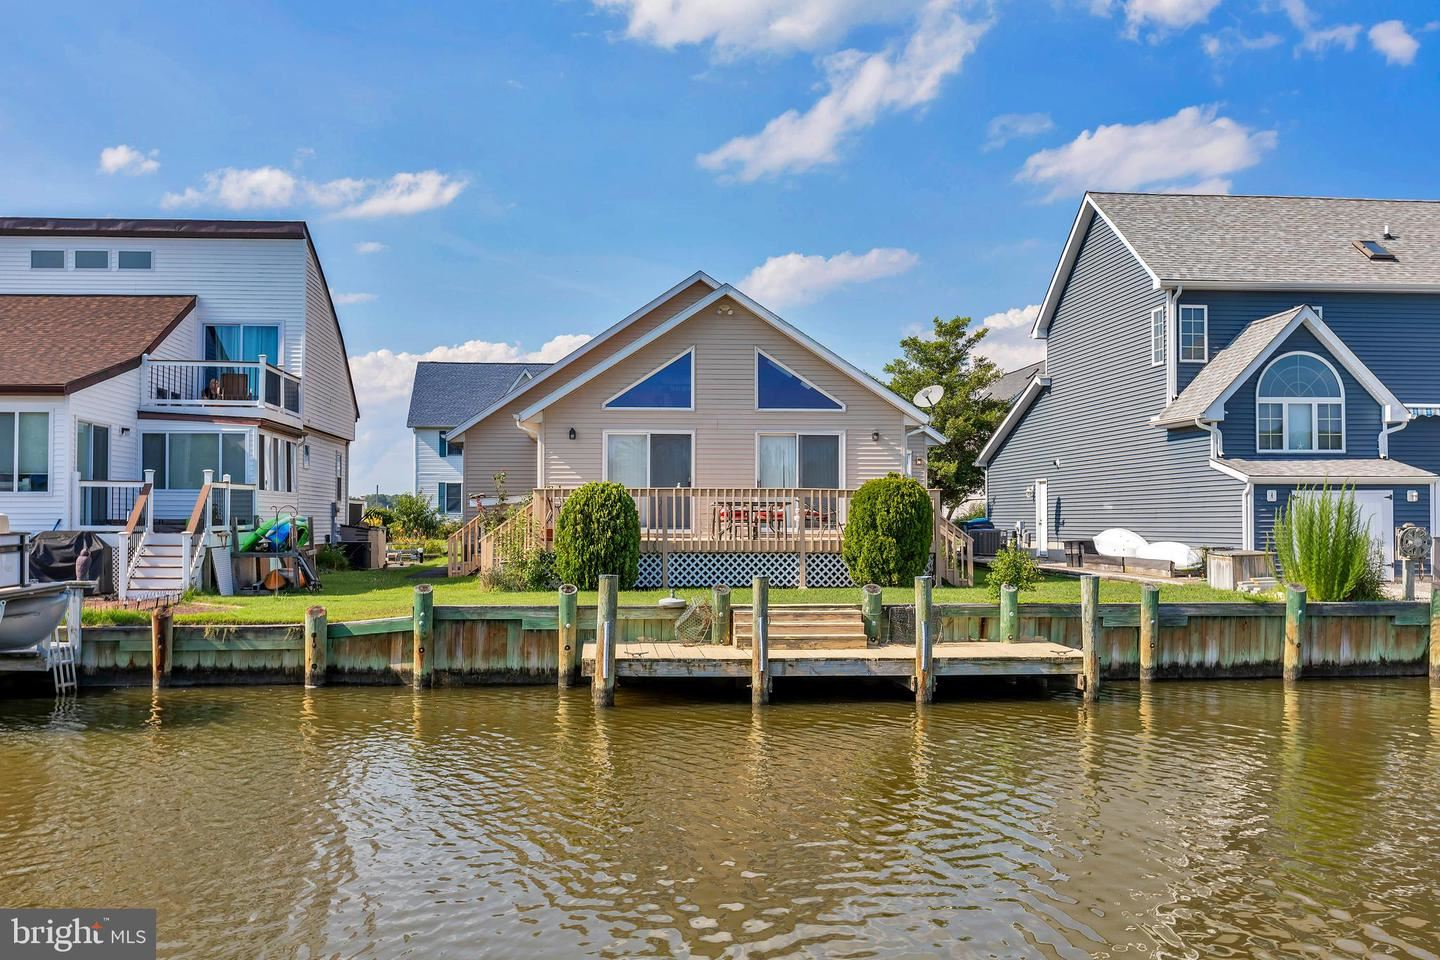 Photo of 24 HARBORVIEW DR, OCEAN PINES, MD 21811 (MLS # MDWO115772)